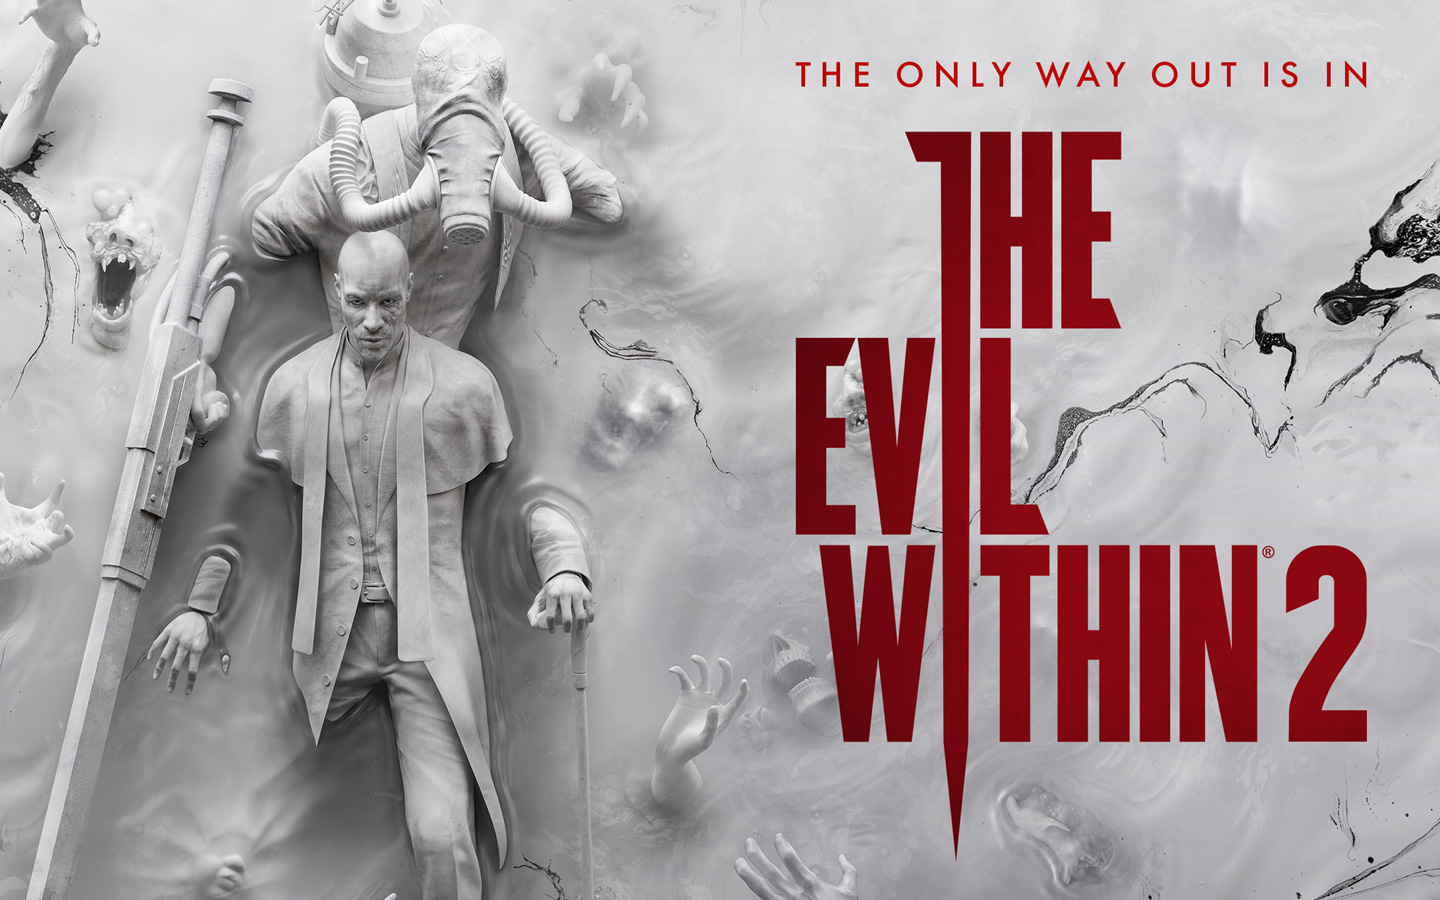 The Evil Within 2 Wallpaper in 1440x900